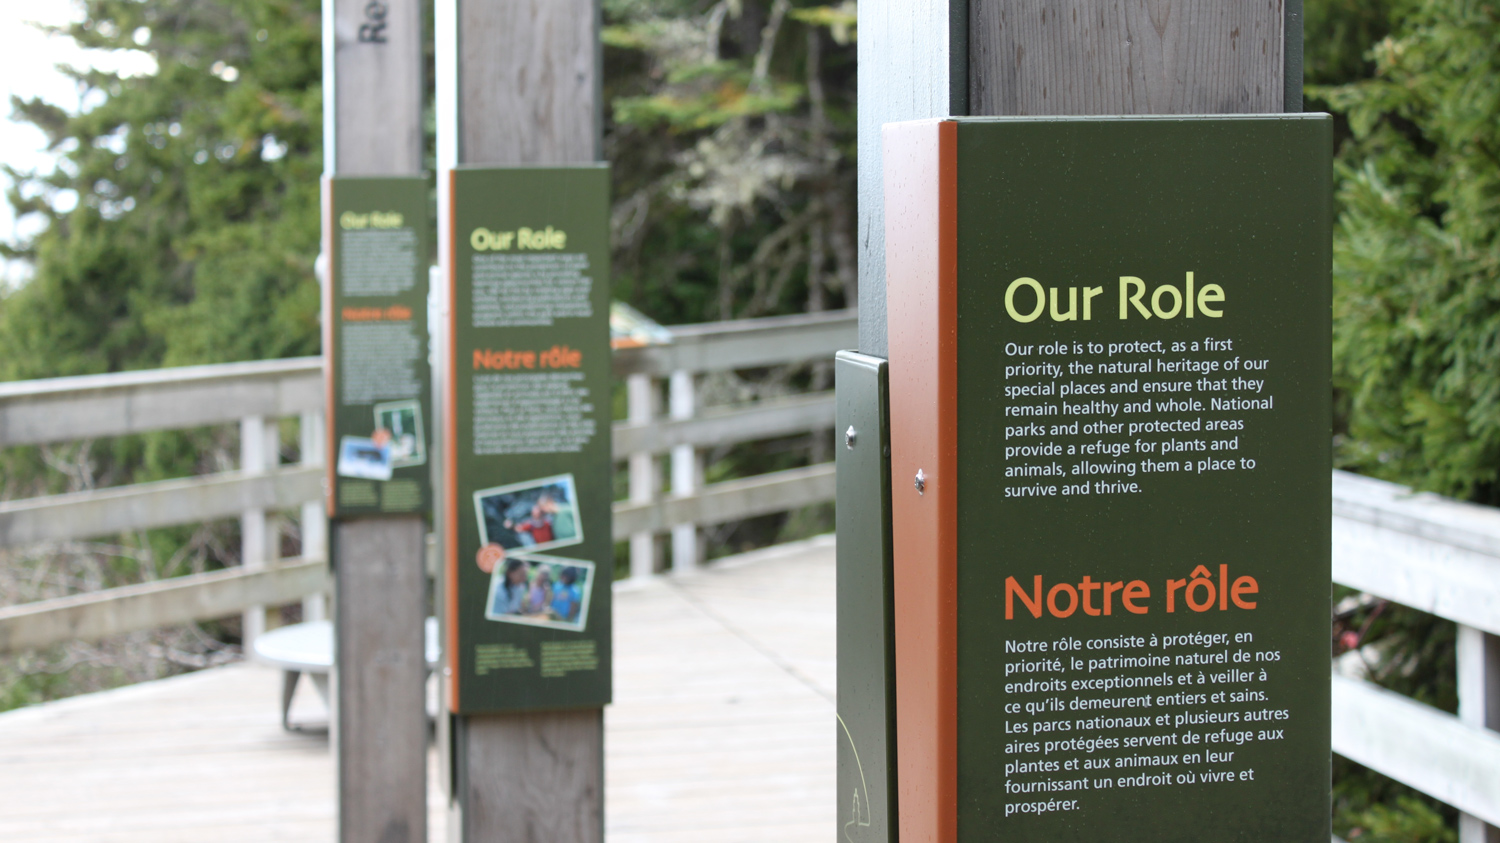 THE PARK'S ECOLOGICAL INTEGRITY Monolithic posts at Falcons Lookout showcase Parks Canada's role in maintaining the park's ecological integrity, as well as how visitors can help.